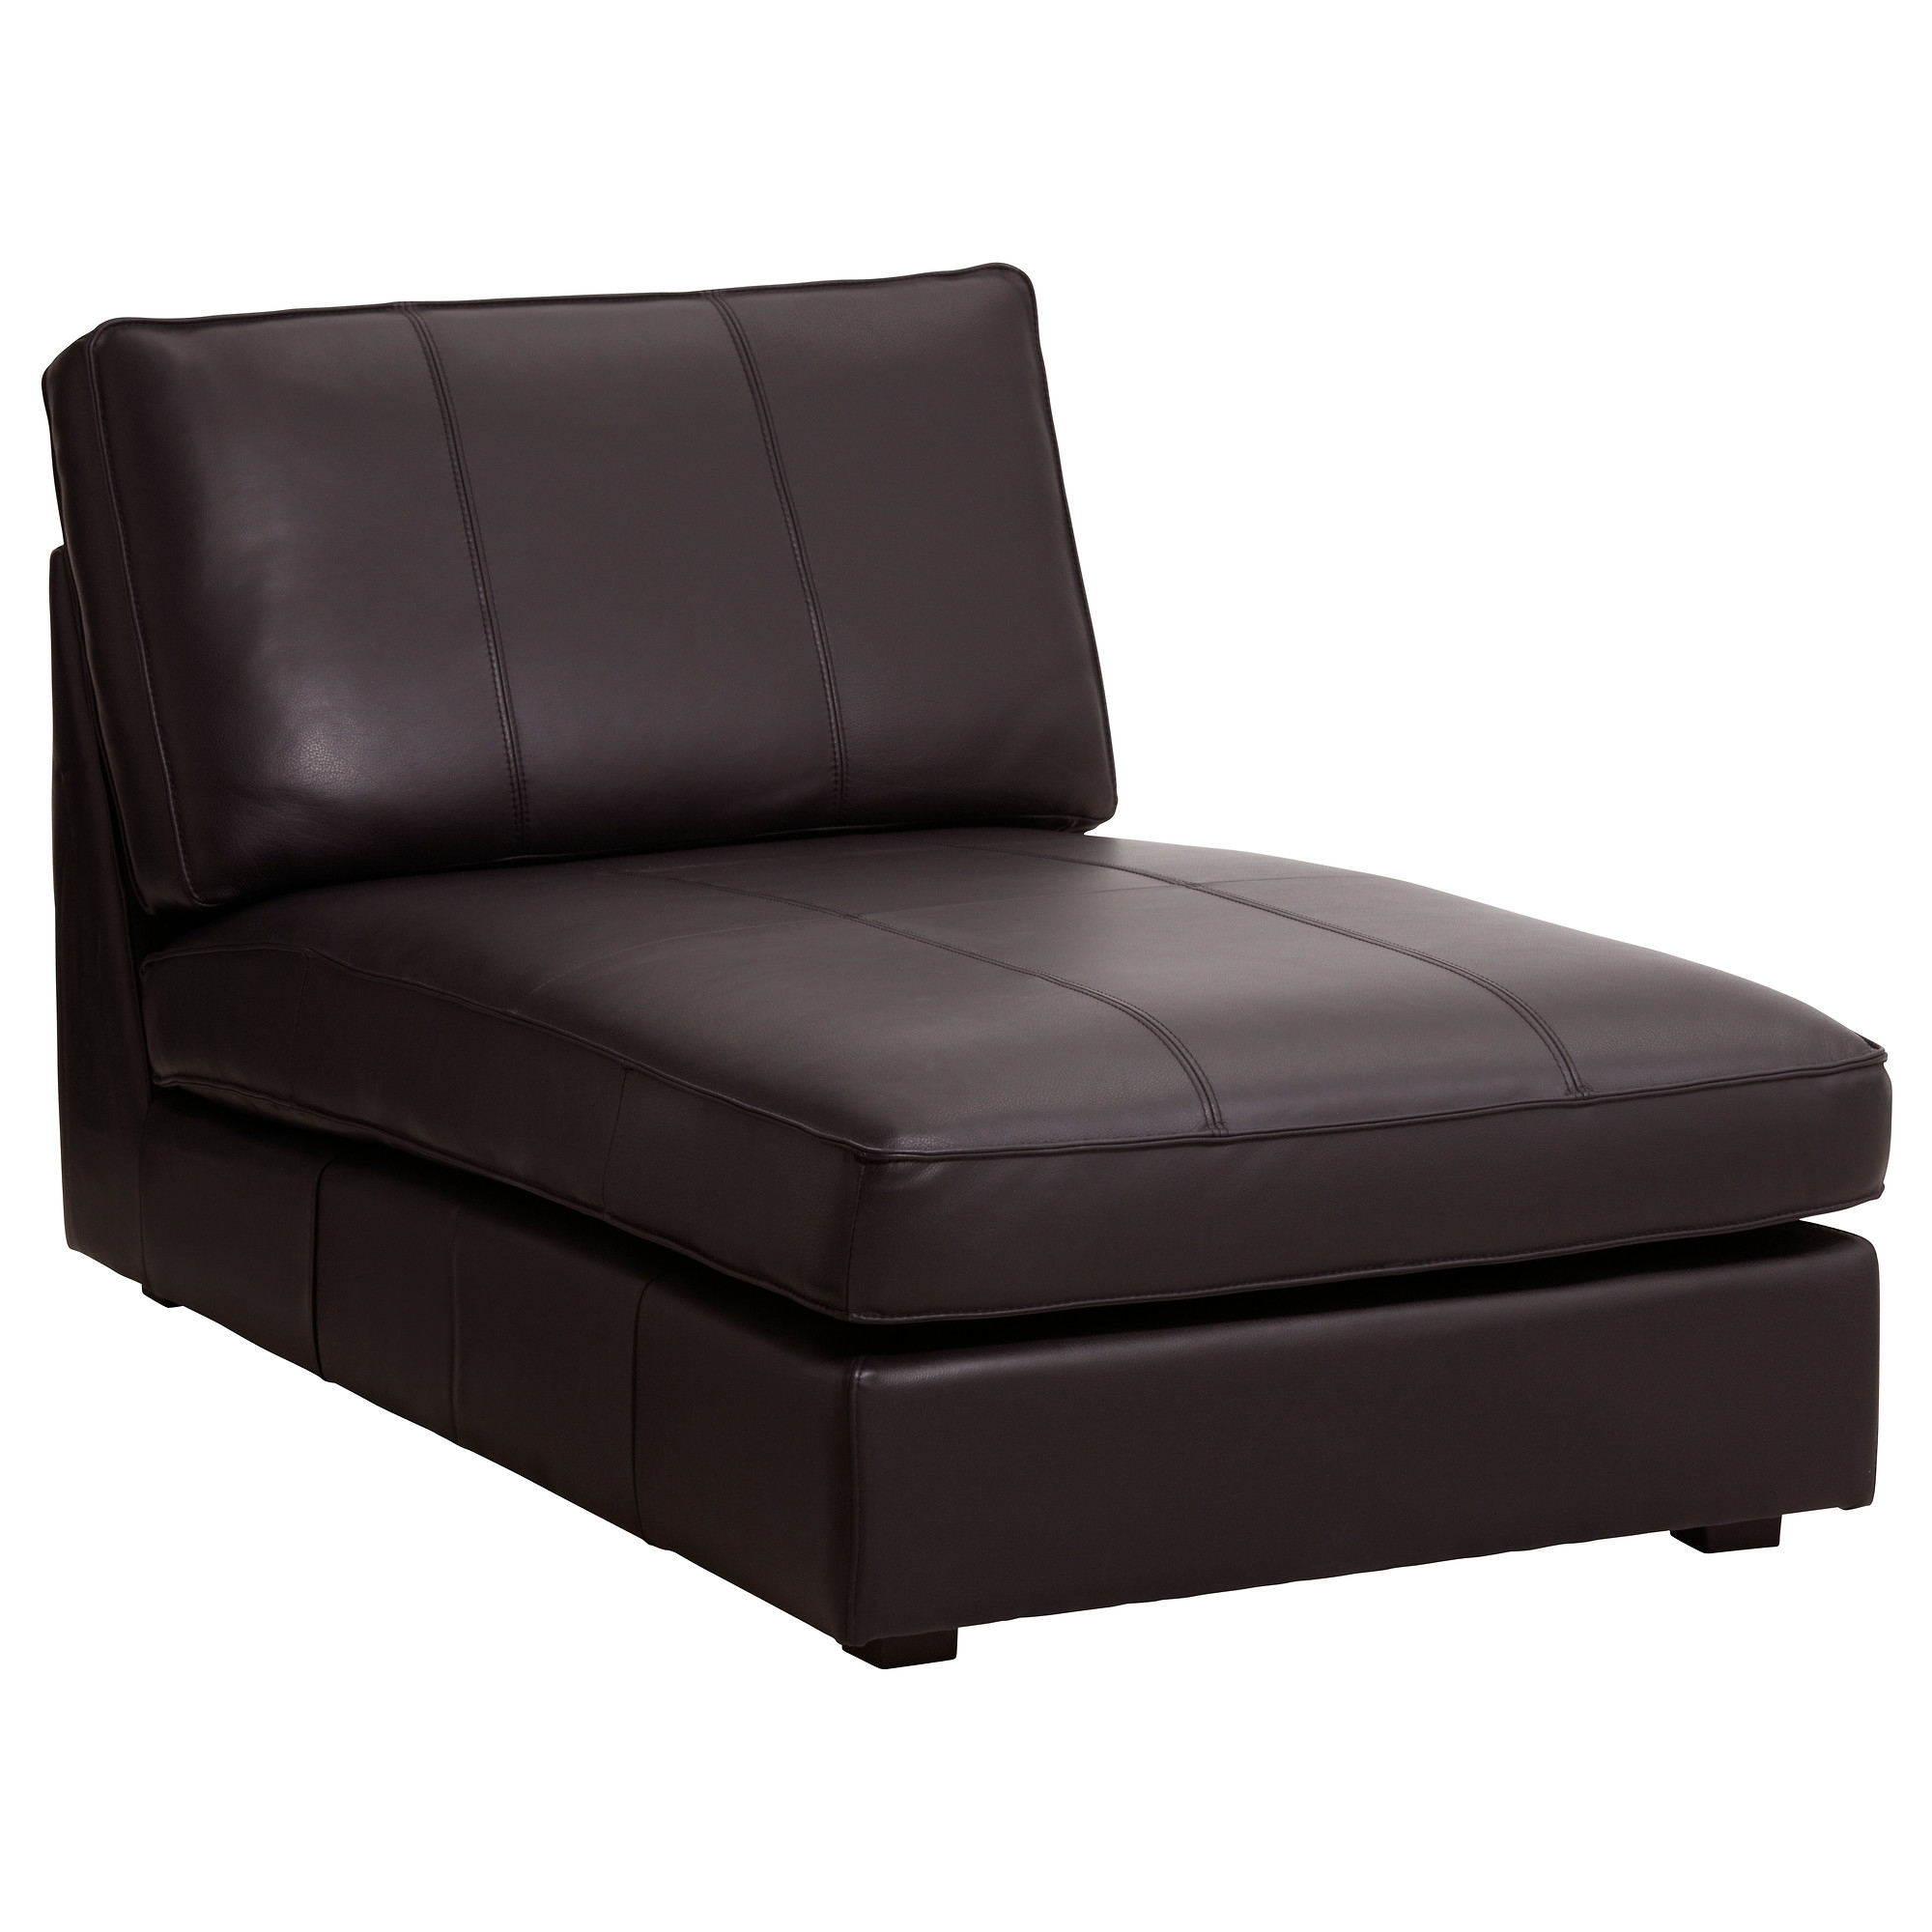 Kivik Chaise - Grann/bomstad Dark Brown - Ikea inside Fashionable Ikea Chaise Lounges